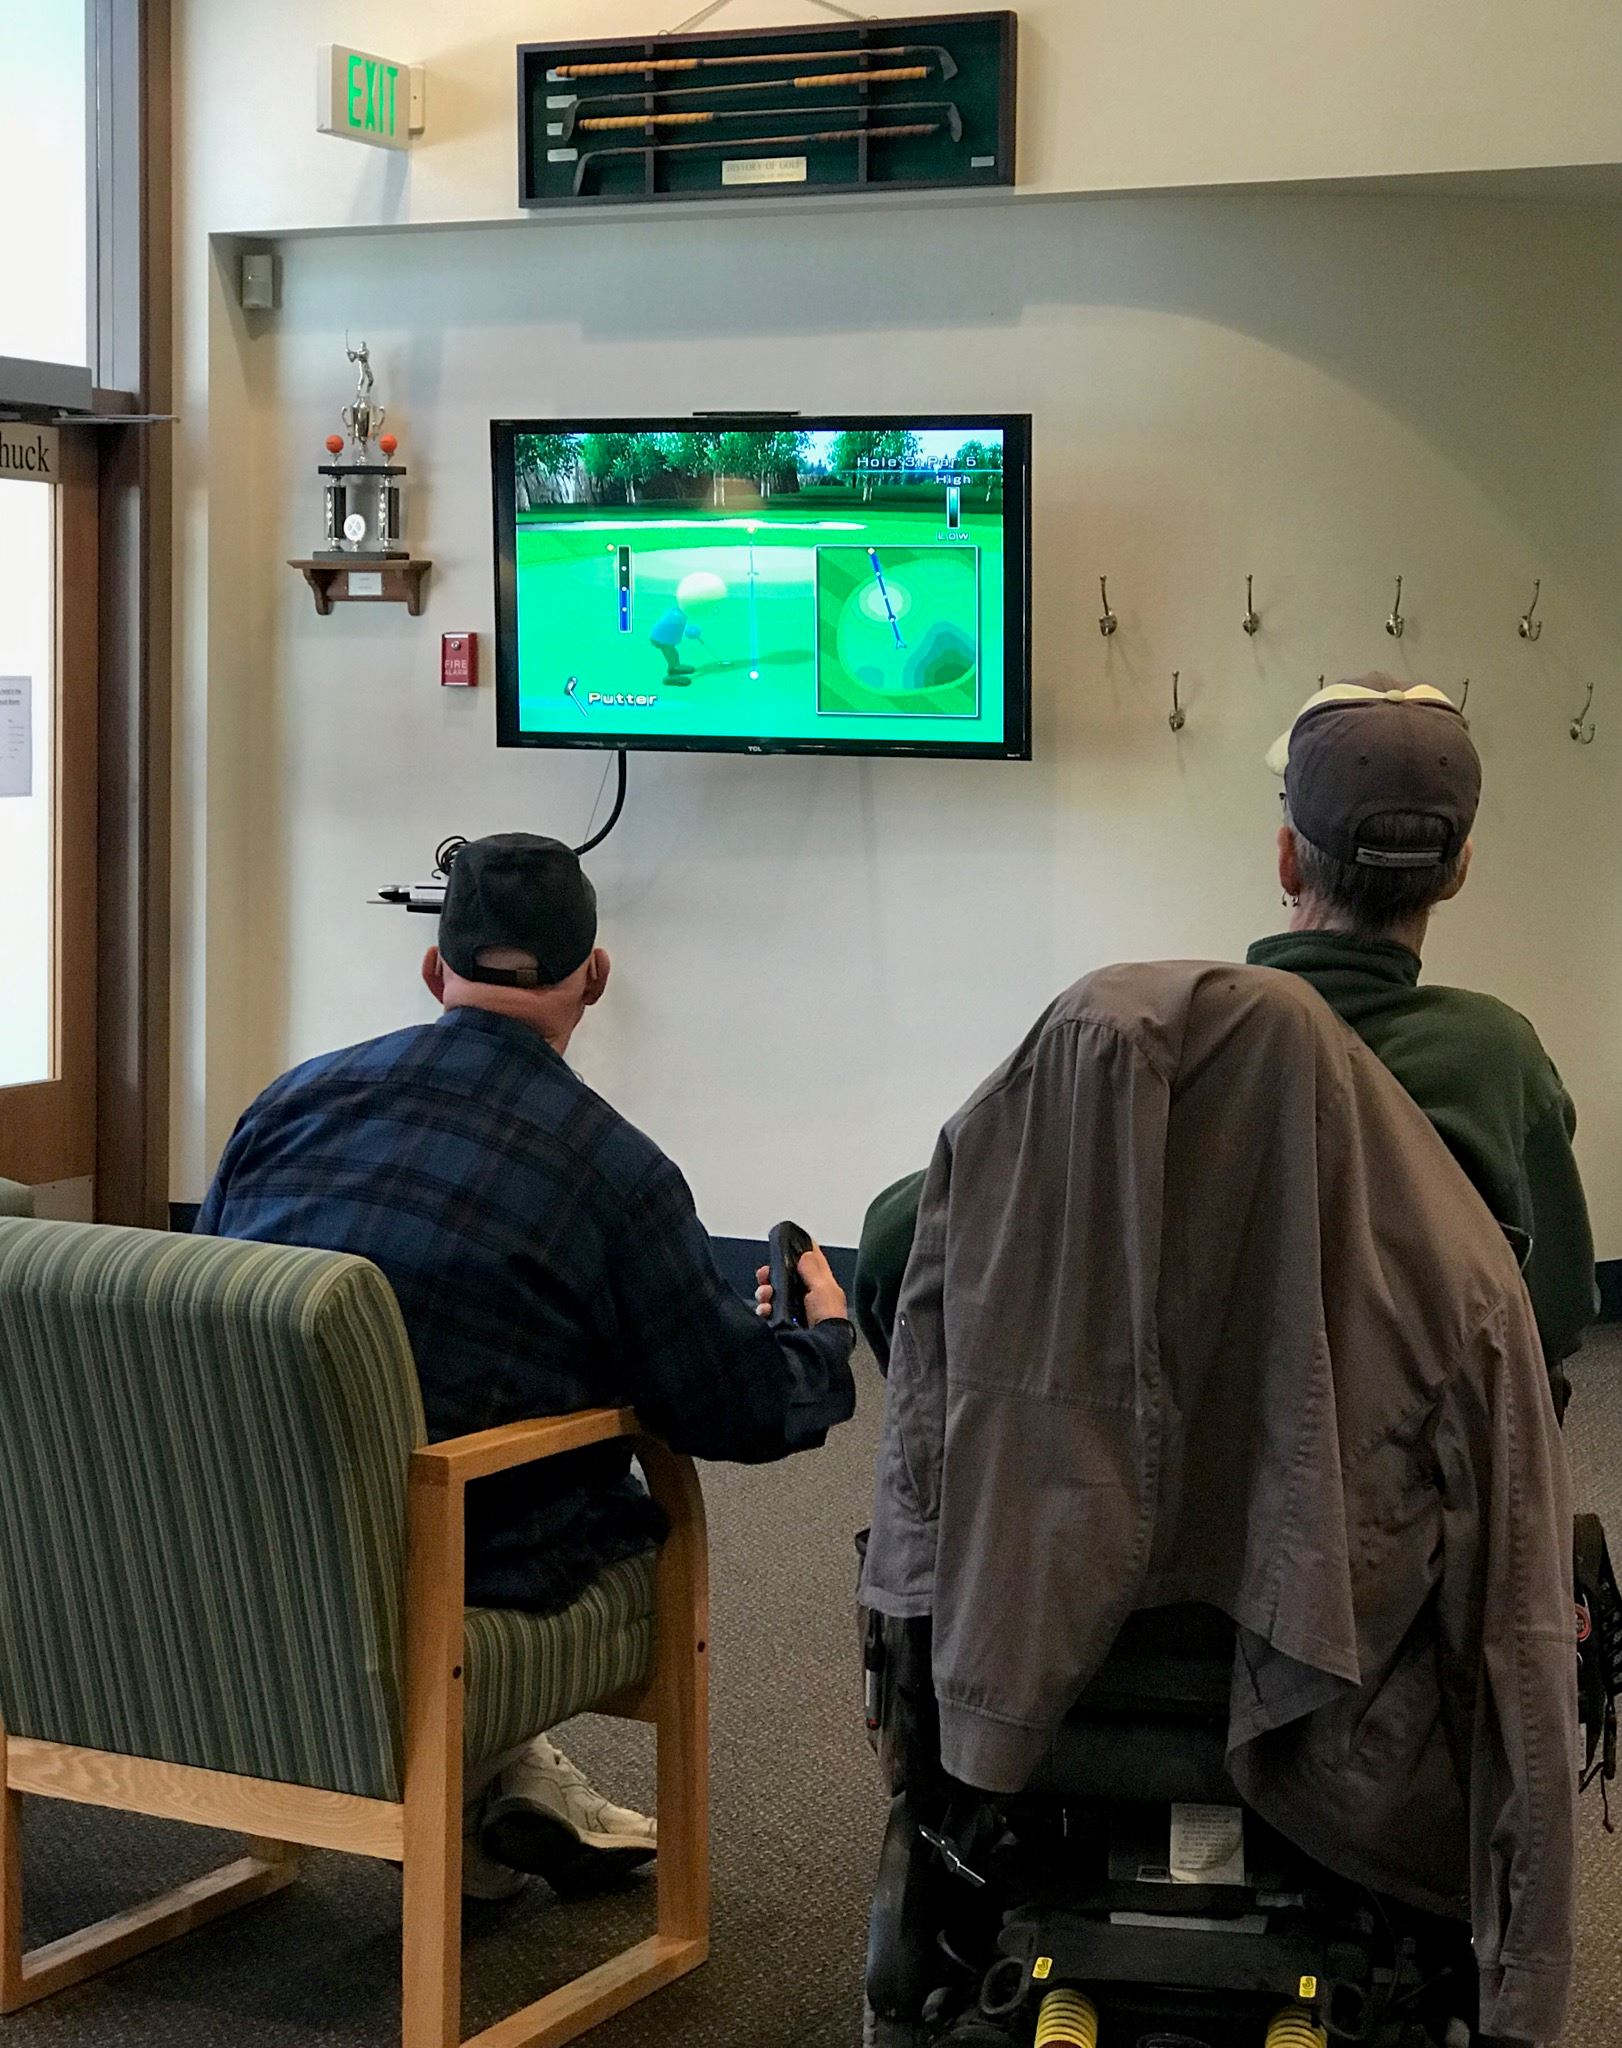 Wii Golf at the Senior Center